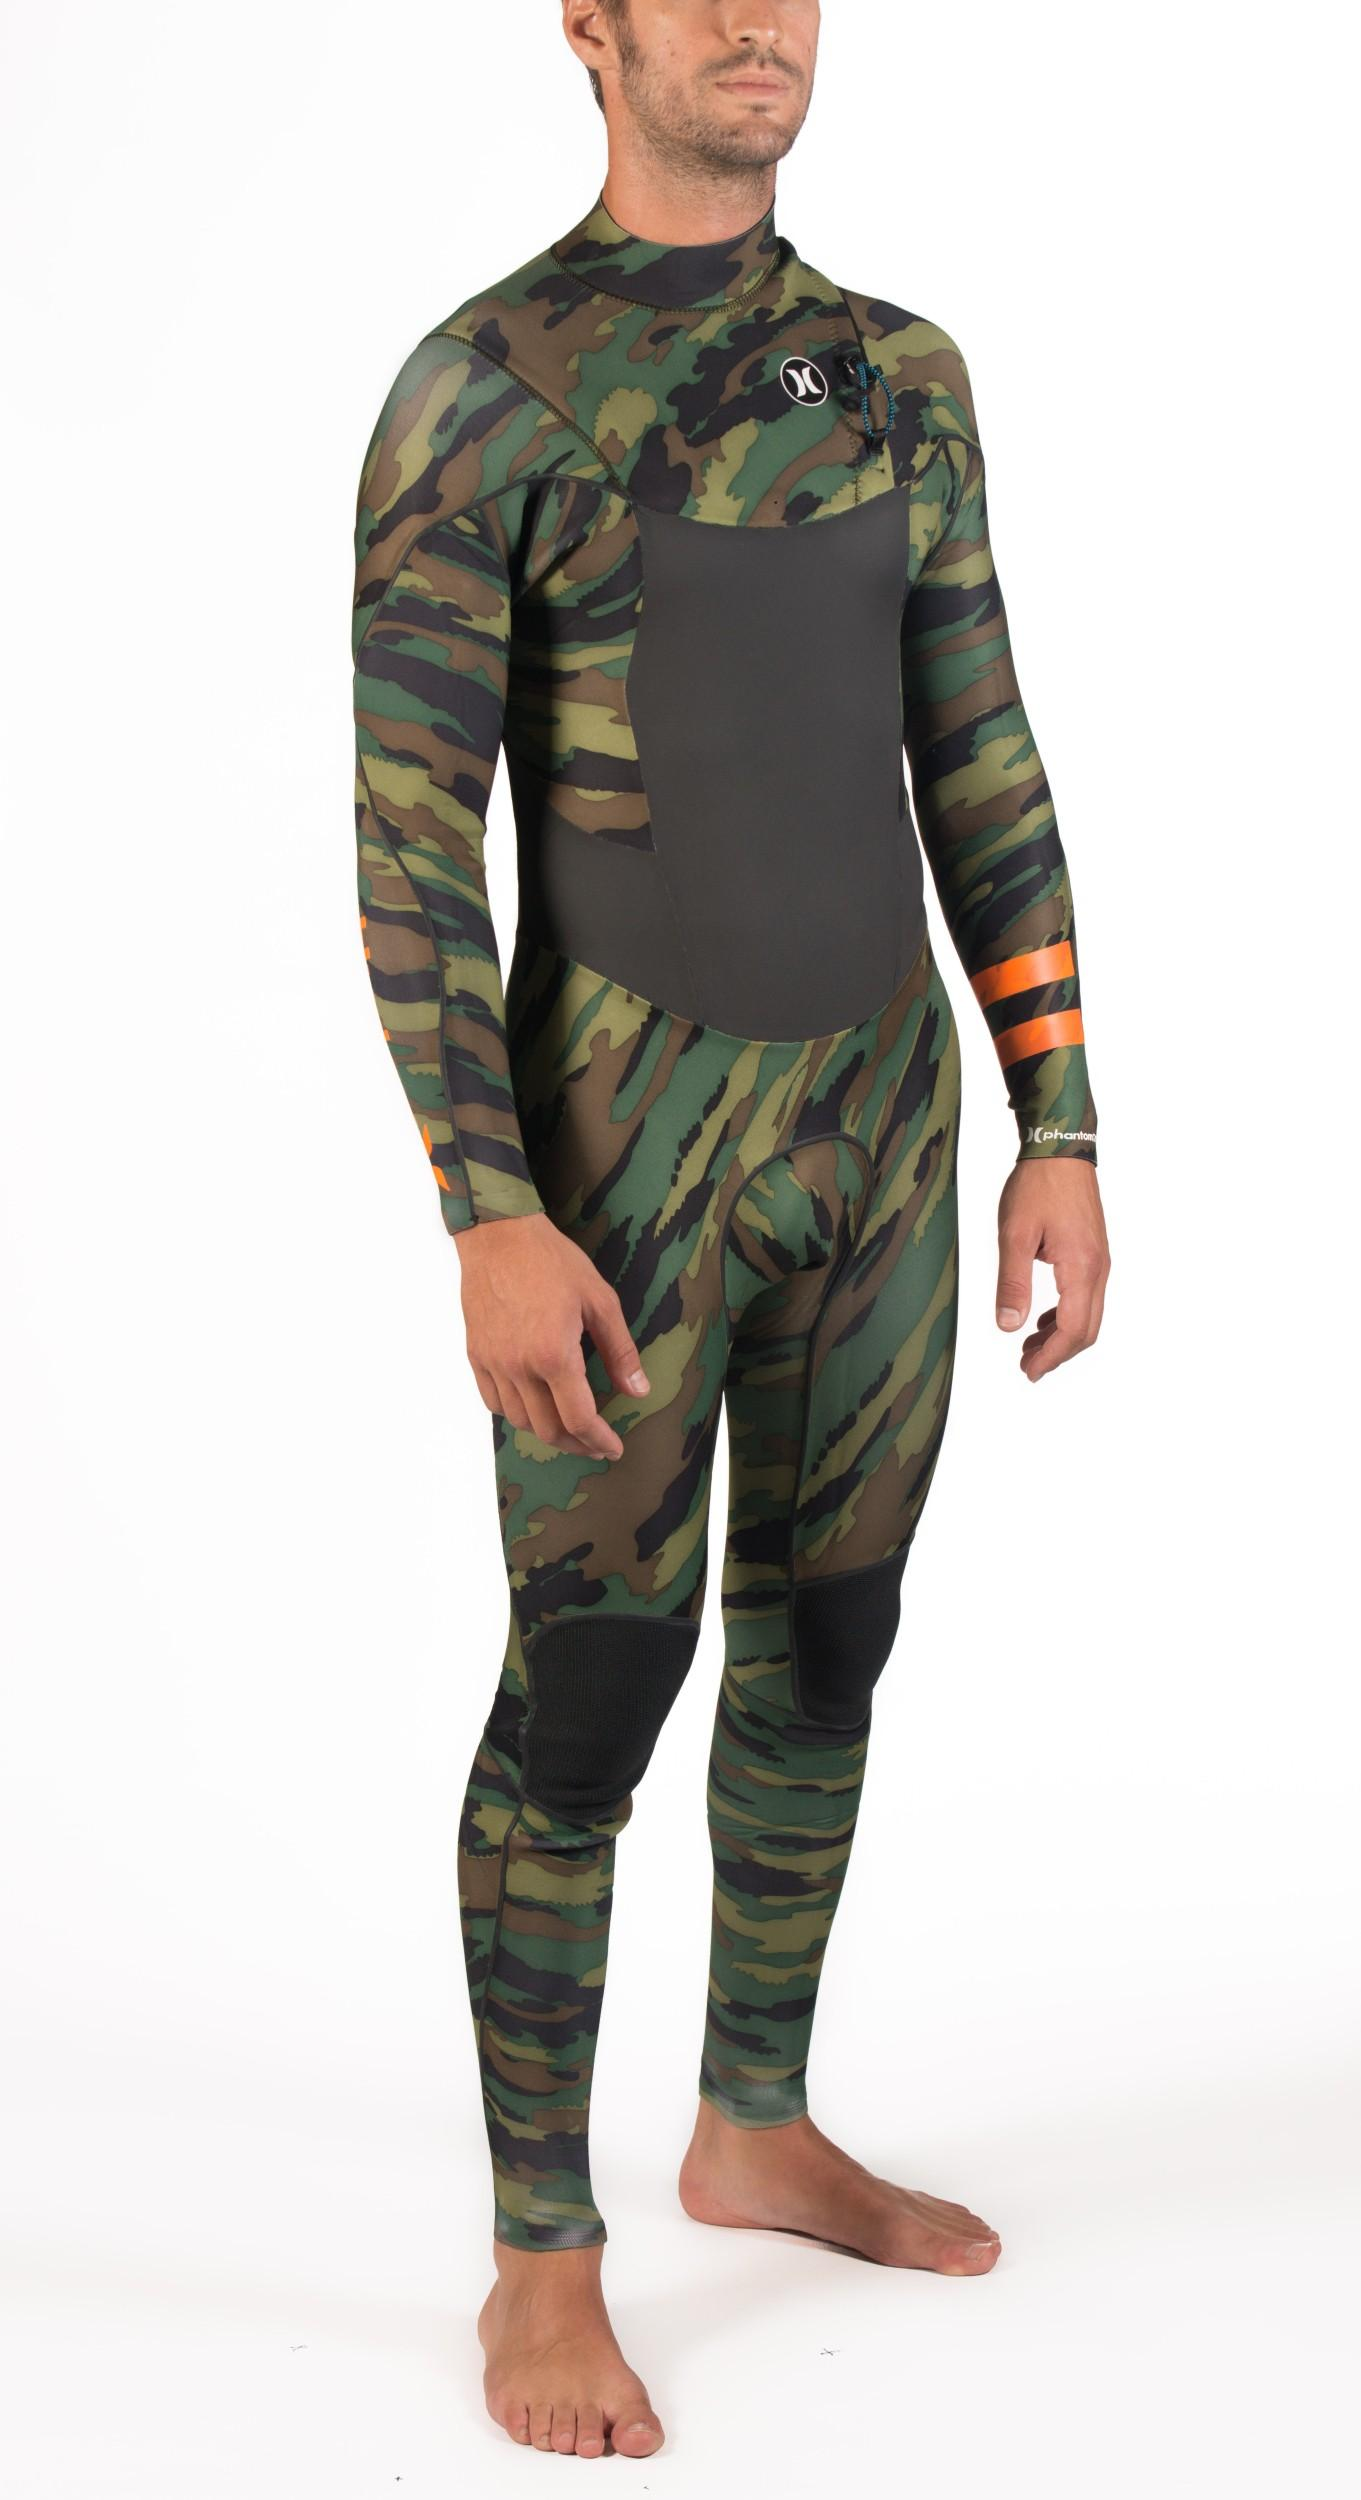 Hurley, Phantom Limited 202 Wetsuit